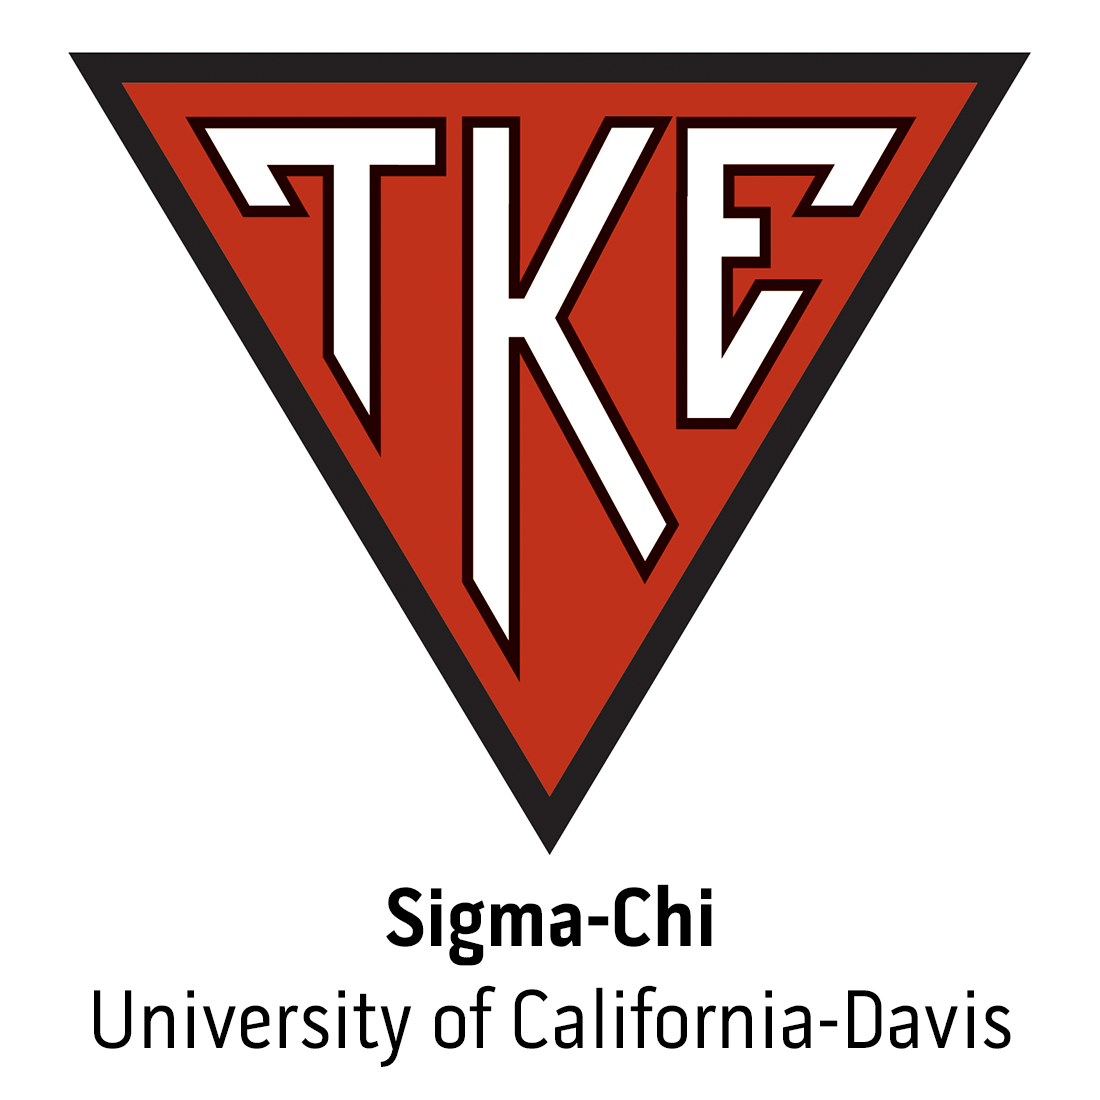 Sigma-Chi Chapter at University of California, Davis